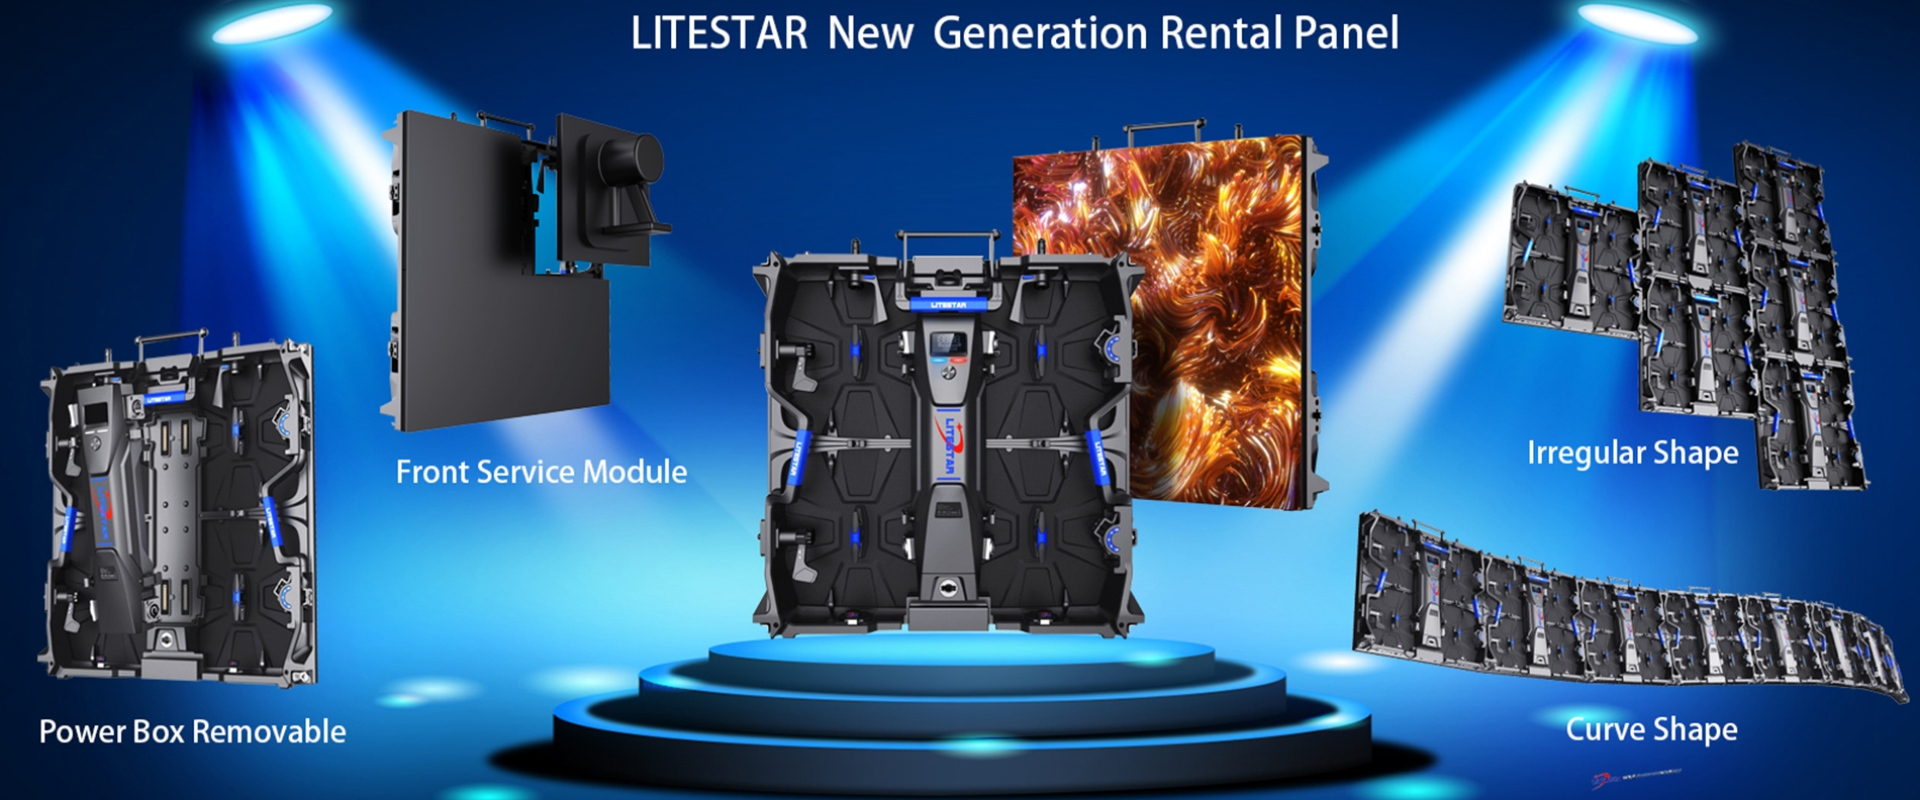 LSR Series Innovative Indoor Rental LED Panel